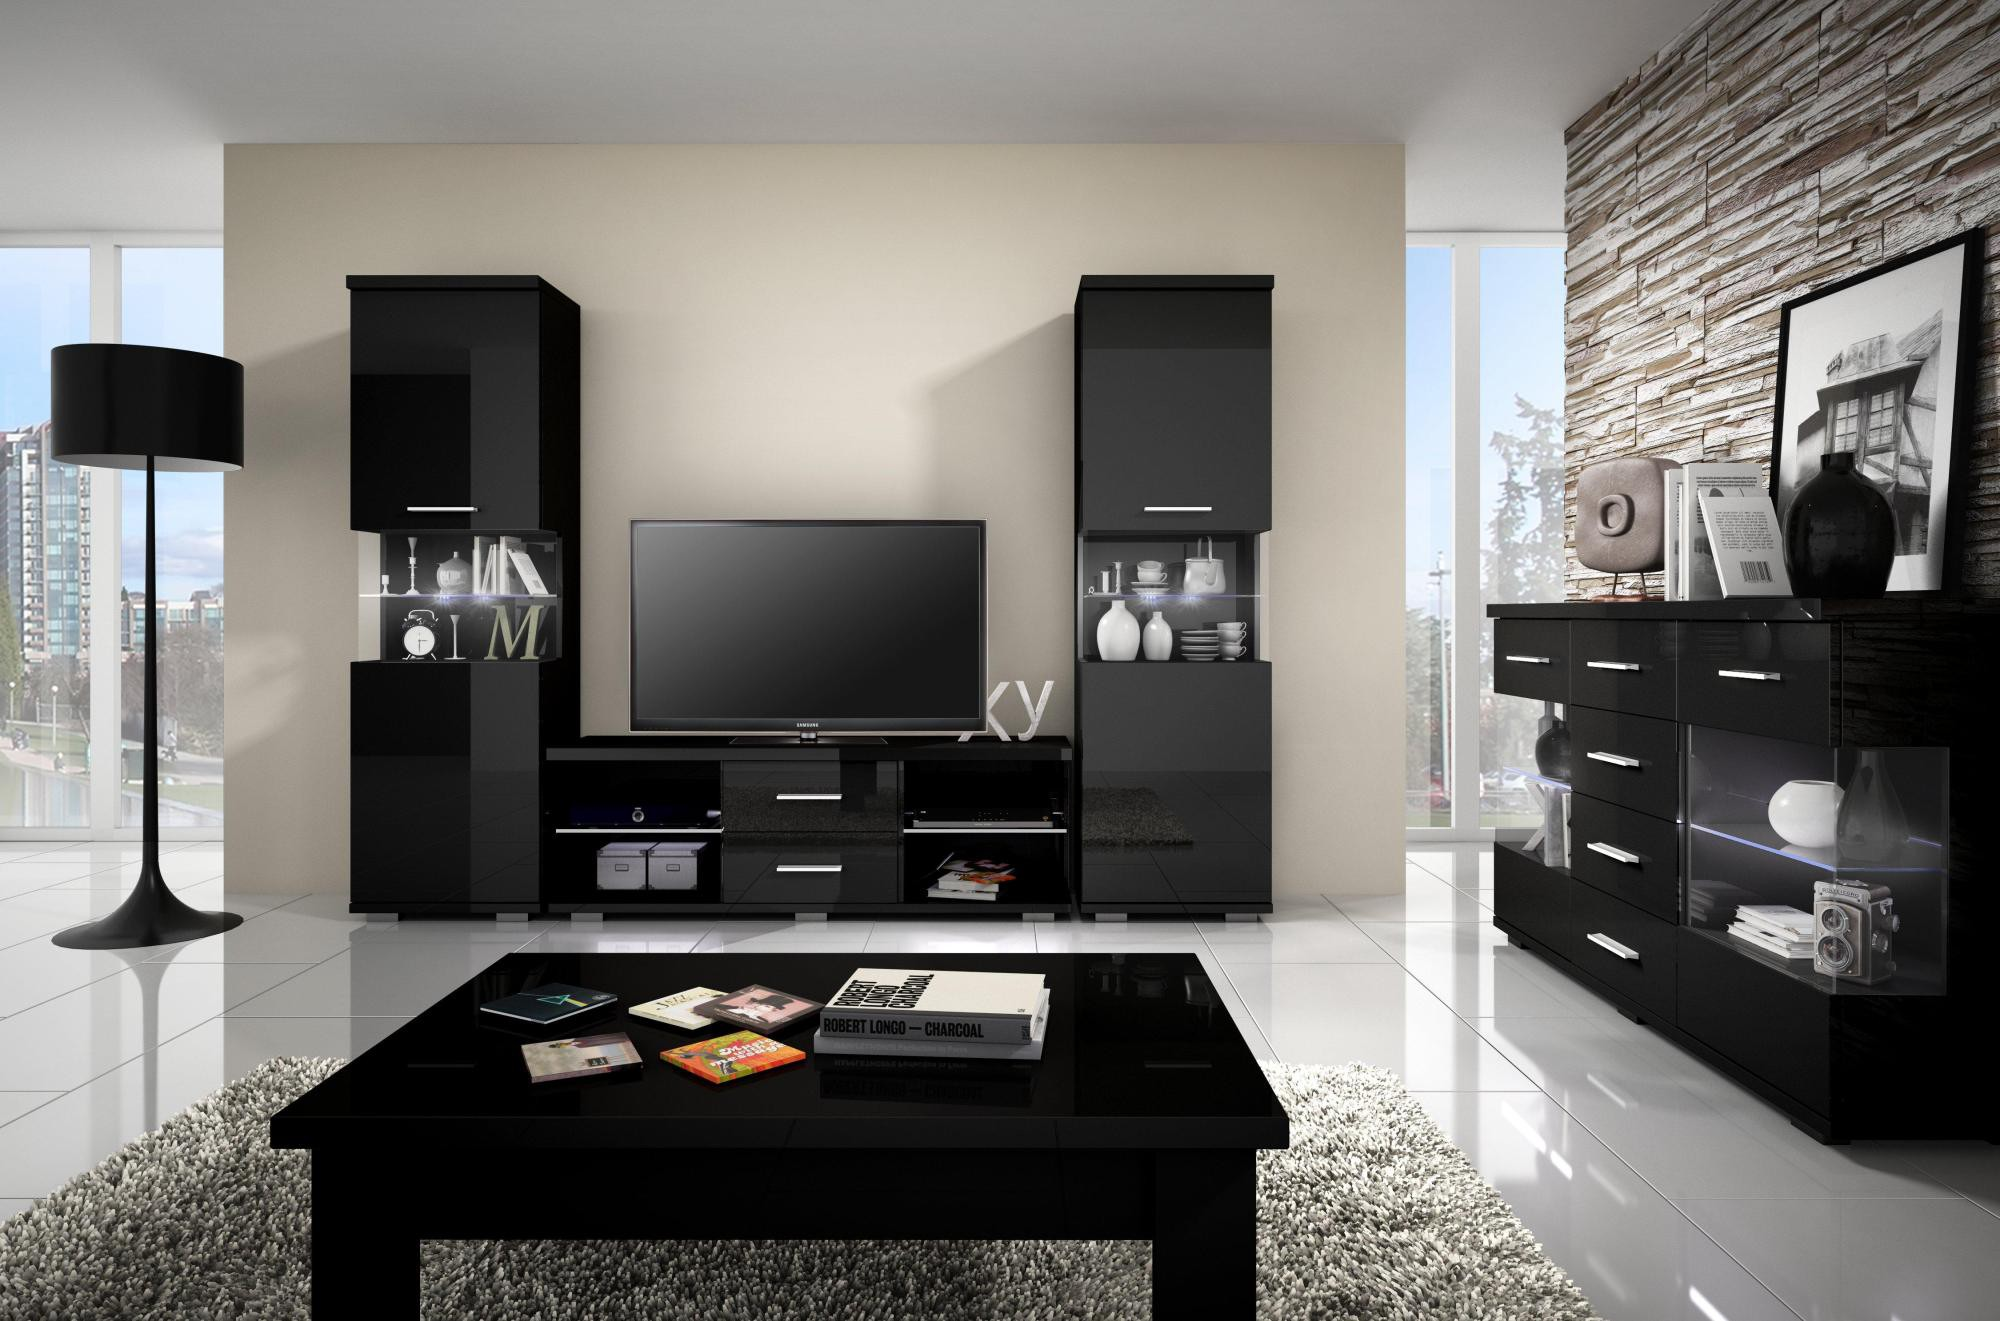 Armoire television salon id es de d coration int rieure for Des idees de decoration interieure